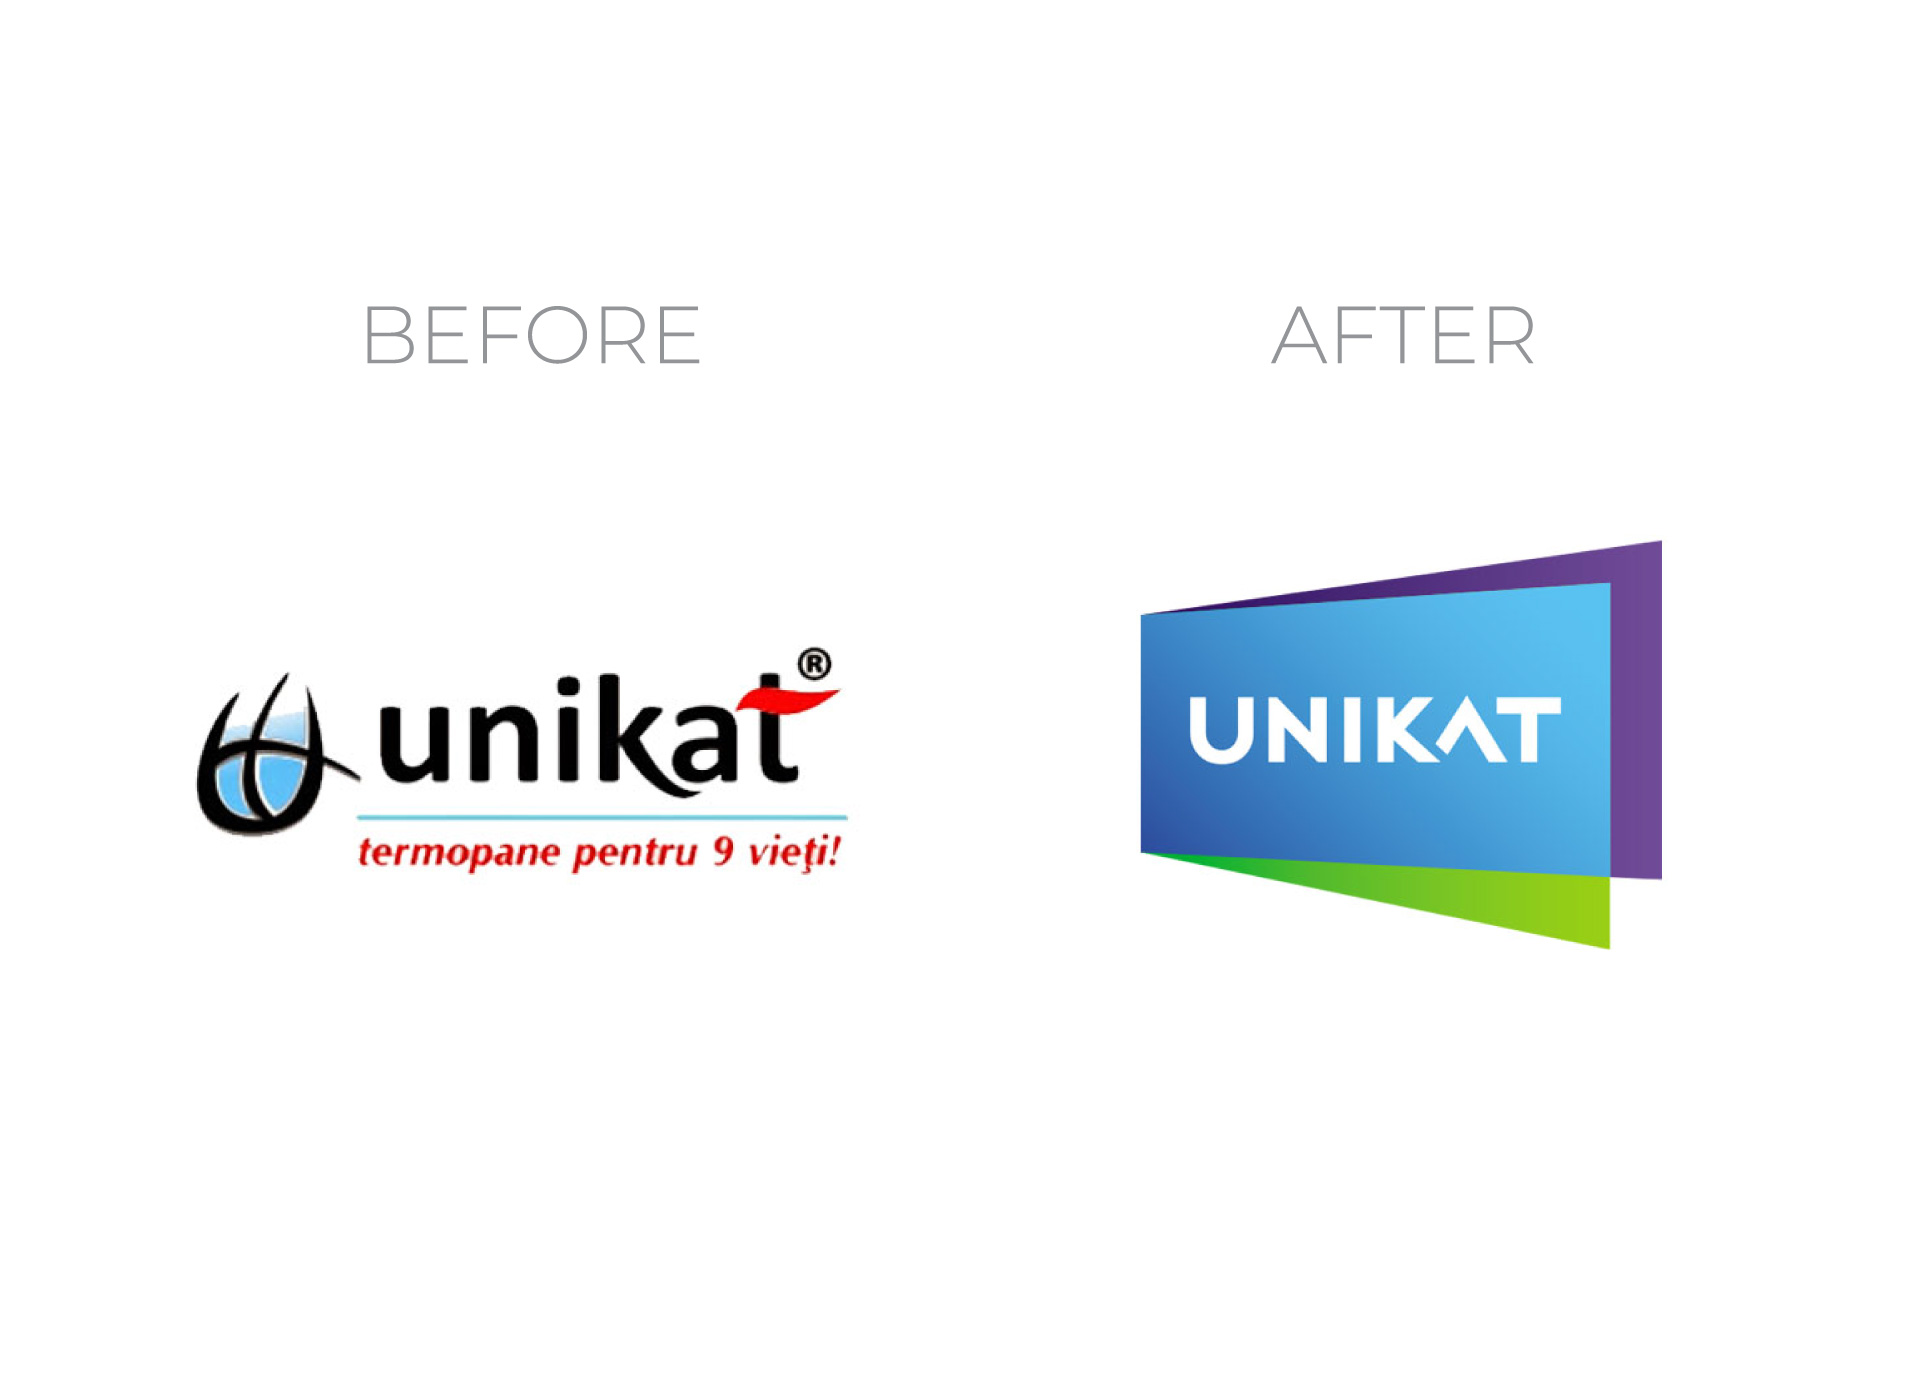 unikat portfolio inoveo before and after rebranding